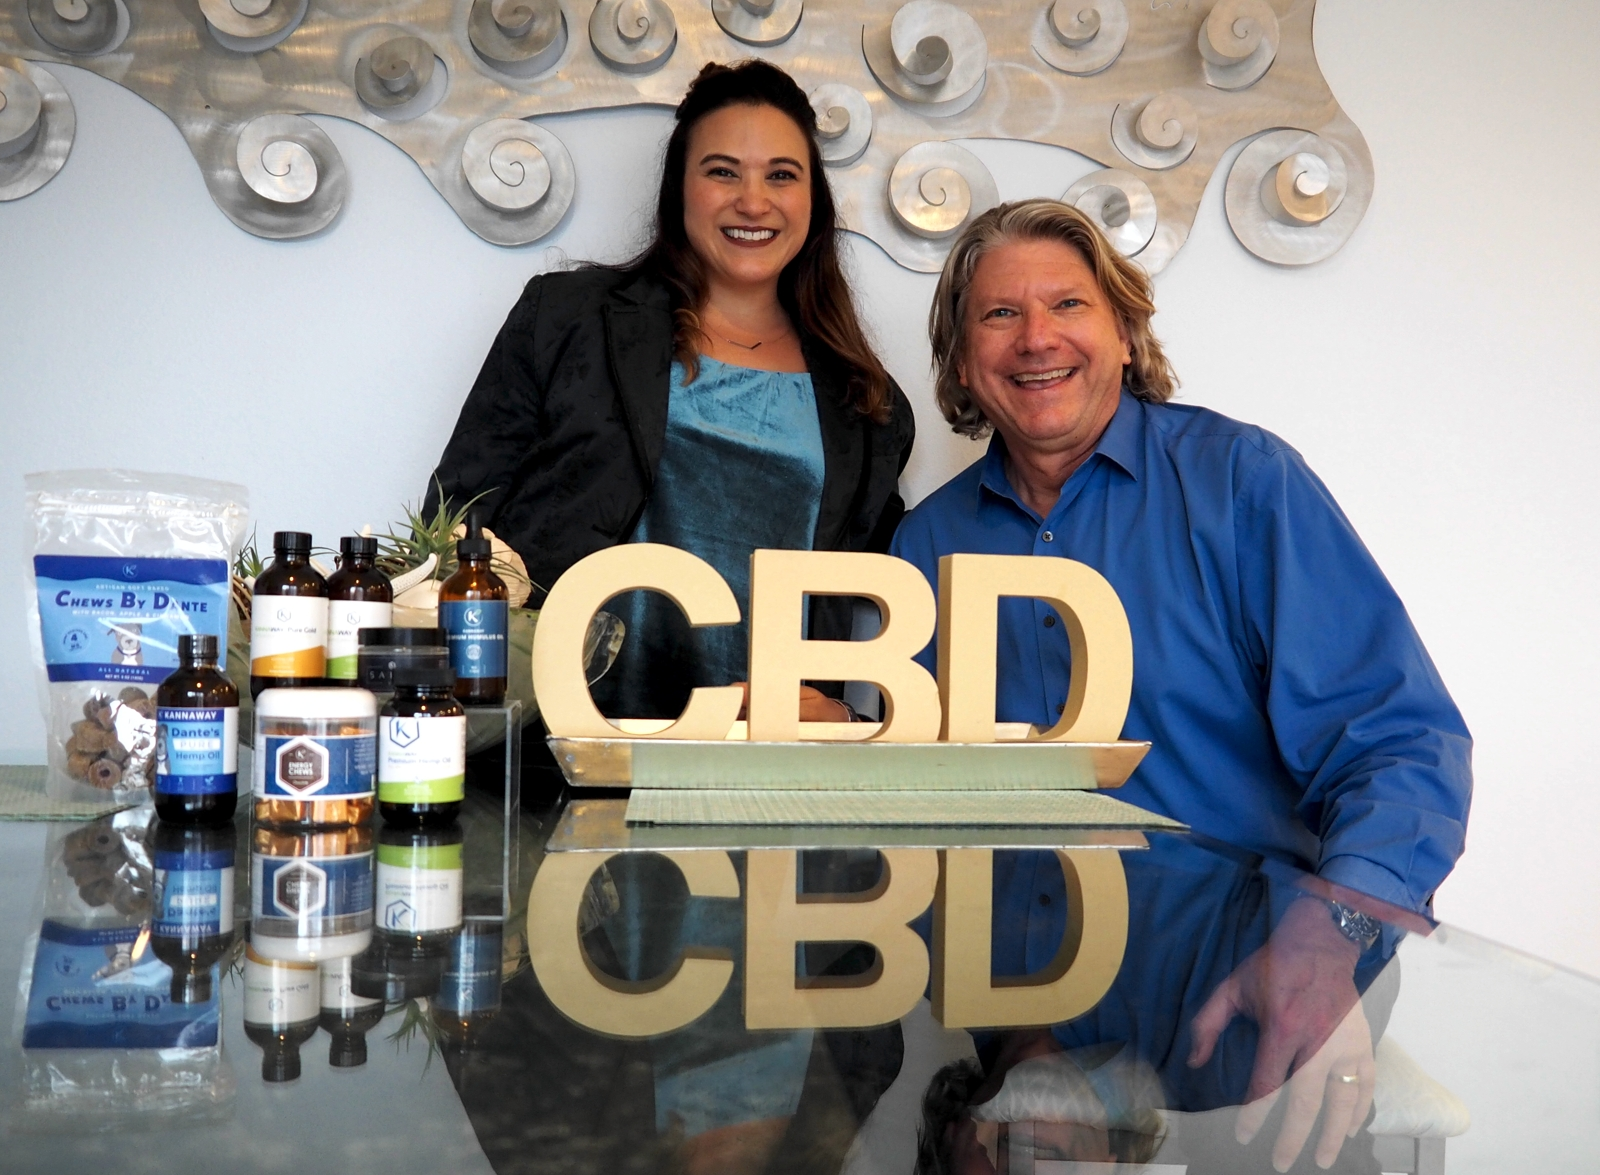 Season 2, Episode 1 - The ABCs of CBDA CBD revolution is taking place across America and I want to learn more about it. My guest today is Aleece Occhino, who transitioned from a successful career in the cosmetics industry to helping people learn about CBD products through her company KannaBusiness CBD, a hemp lifestyle brand. She also represents Kannaway, whose goal is to share the life-changing benefits of hemp-based CBD with people around the world.Visit Apple Podcasts Preview, find us in iTunes and subscribe. Or, you may download it here.To learn more about Aleece, please visit:KannaBusiness, Instagram, Facebook, and KannawayEmail AleeceTo learn more about cannabis for adults, visit Three Wells.